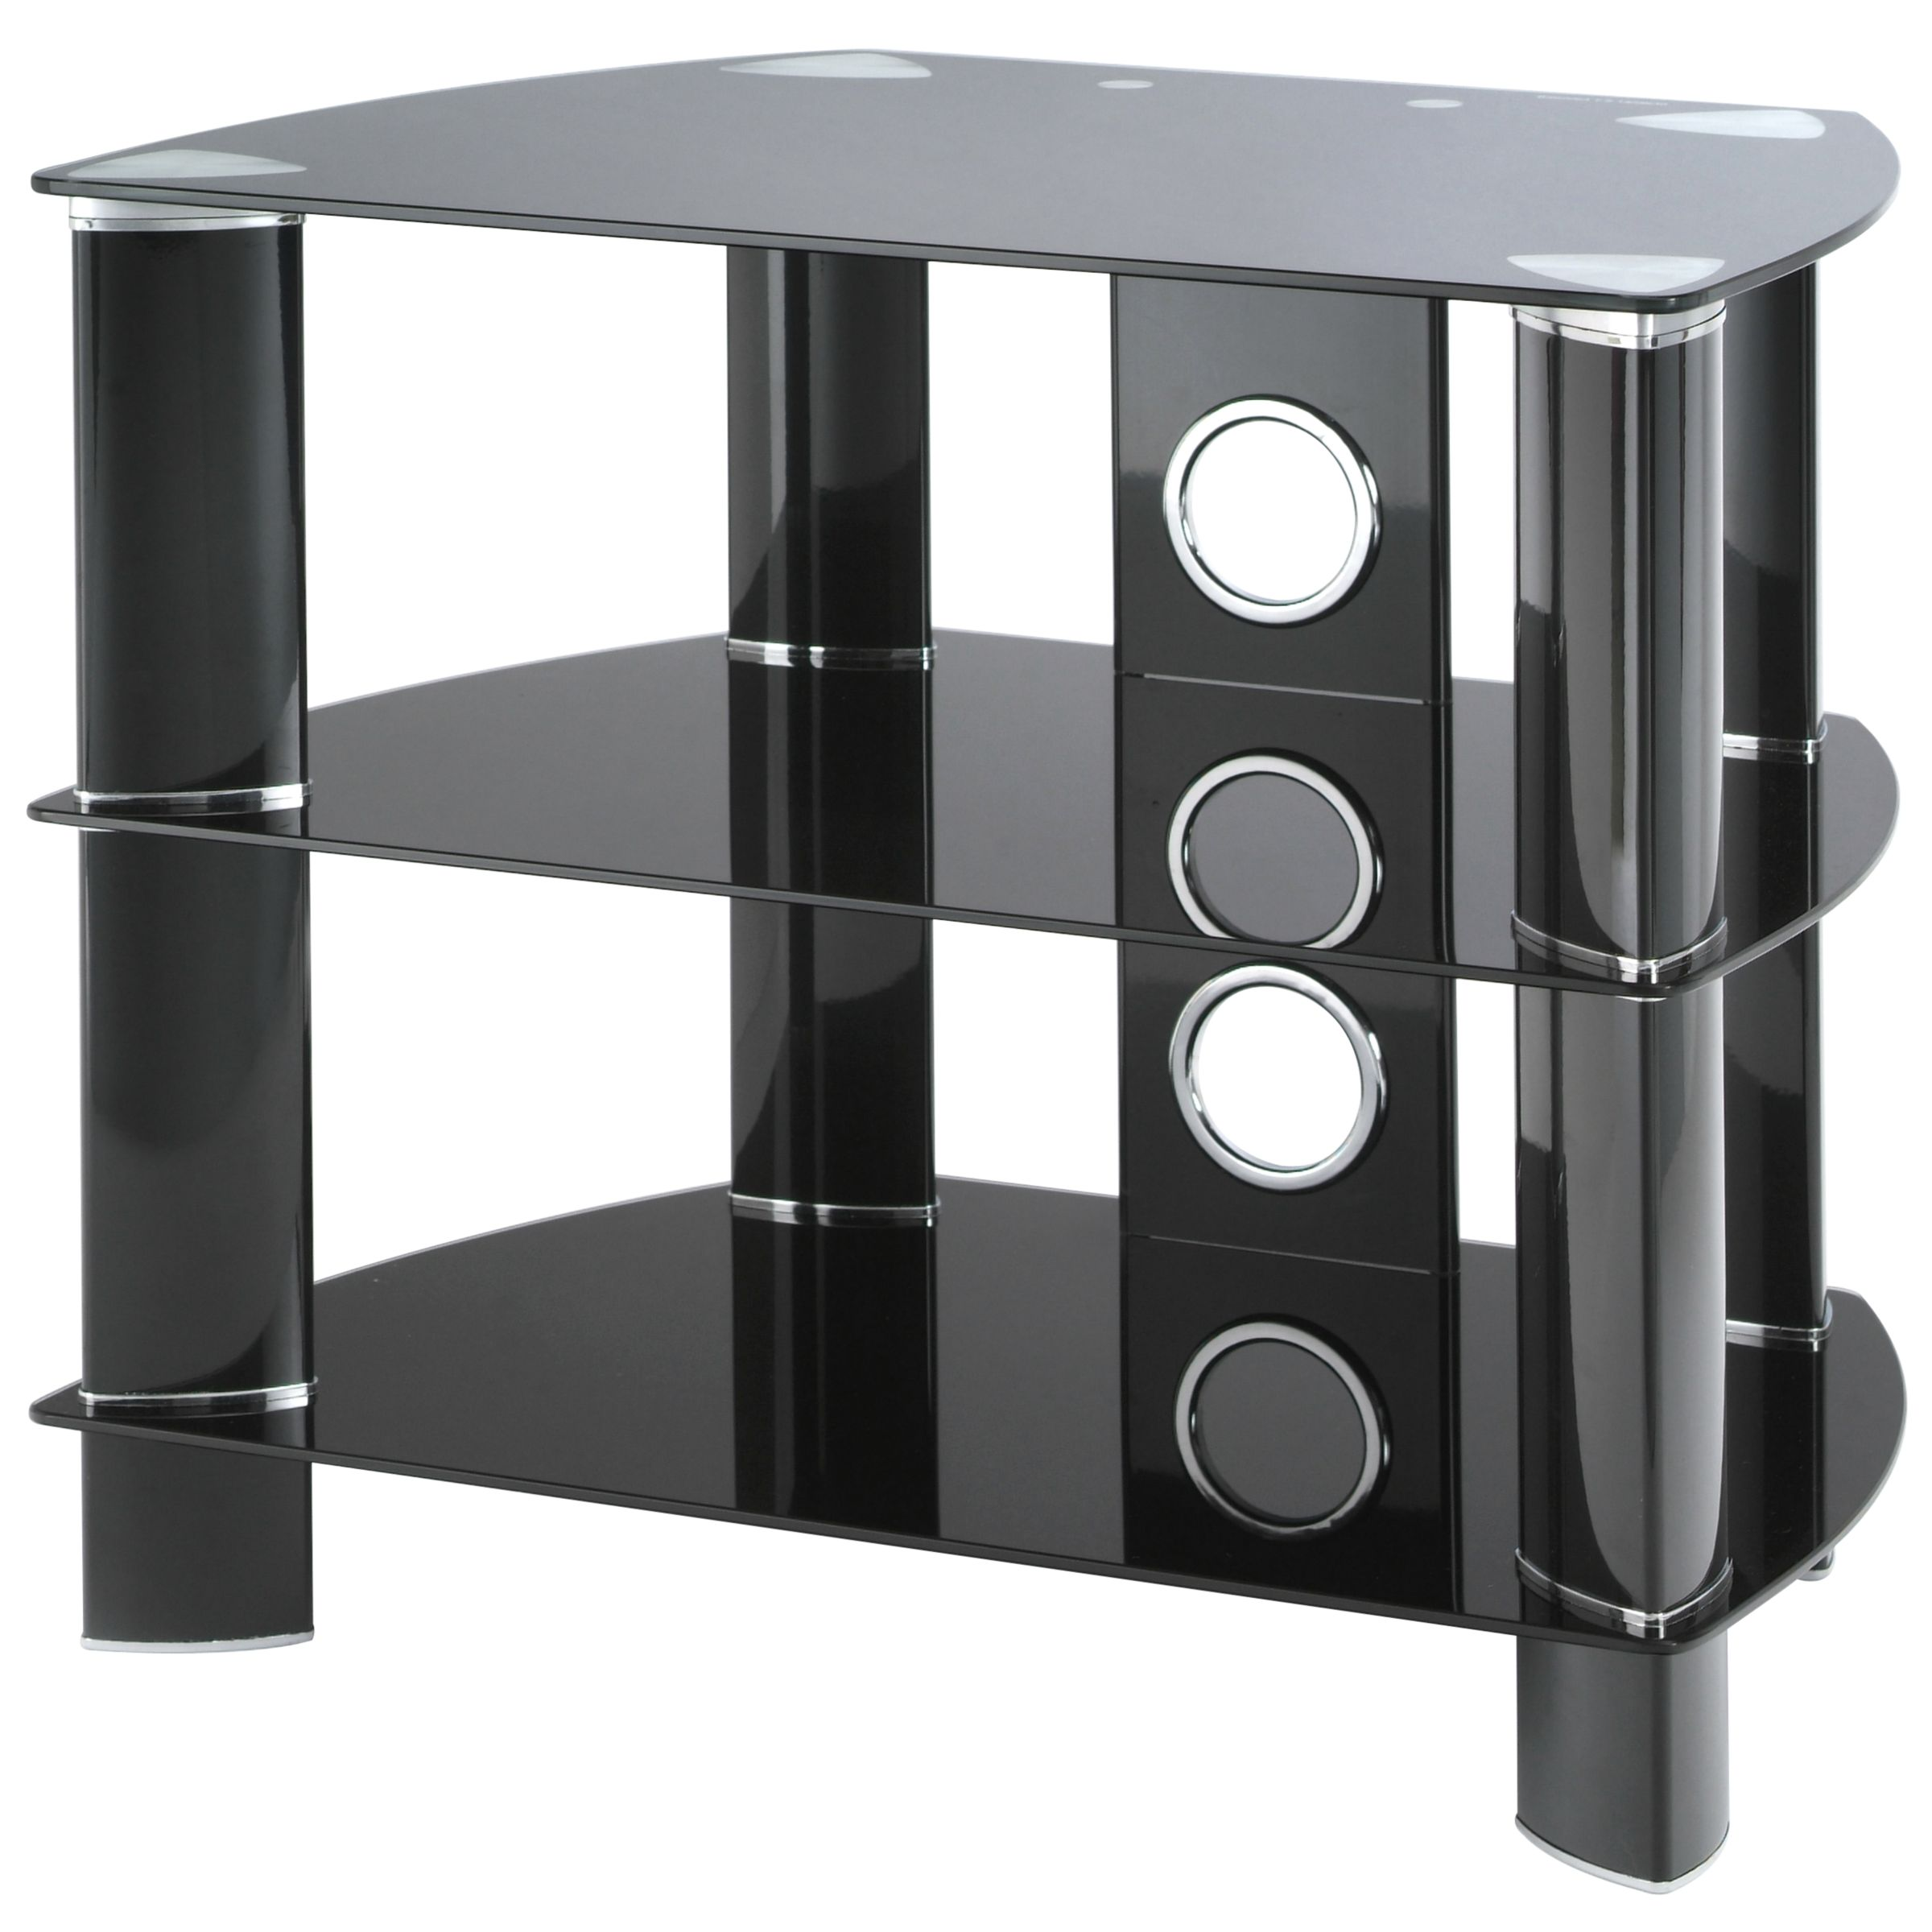 JL600/B10 Television Stand, Black Glass